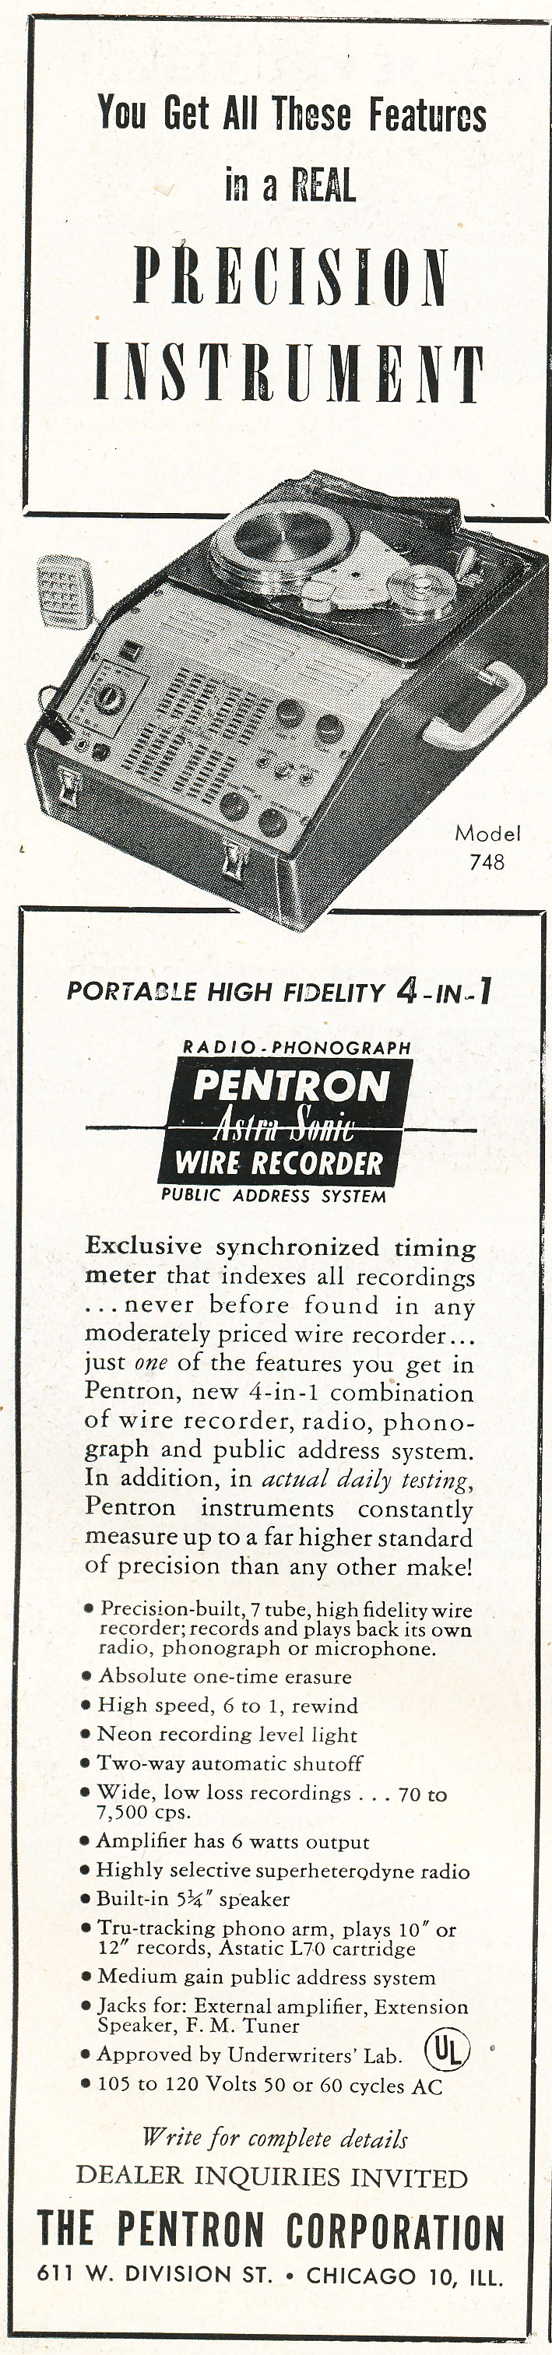 1948 ad for the Pentron wire recorder in Reel2ReelTexas.com's vintage recording collection